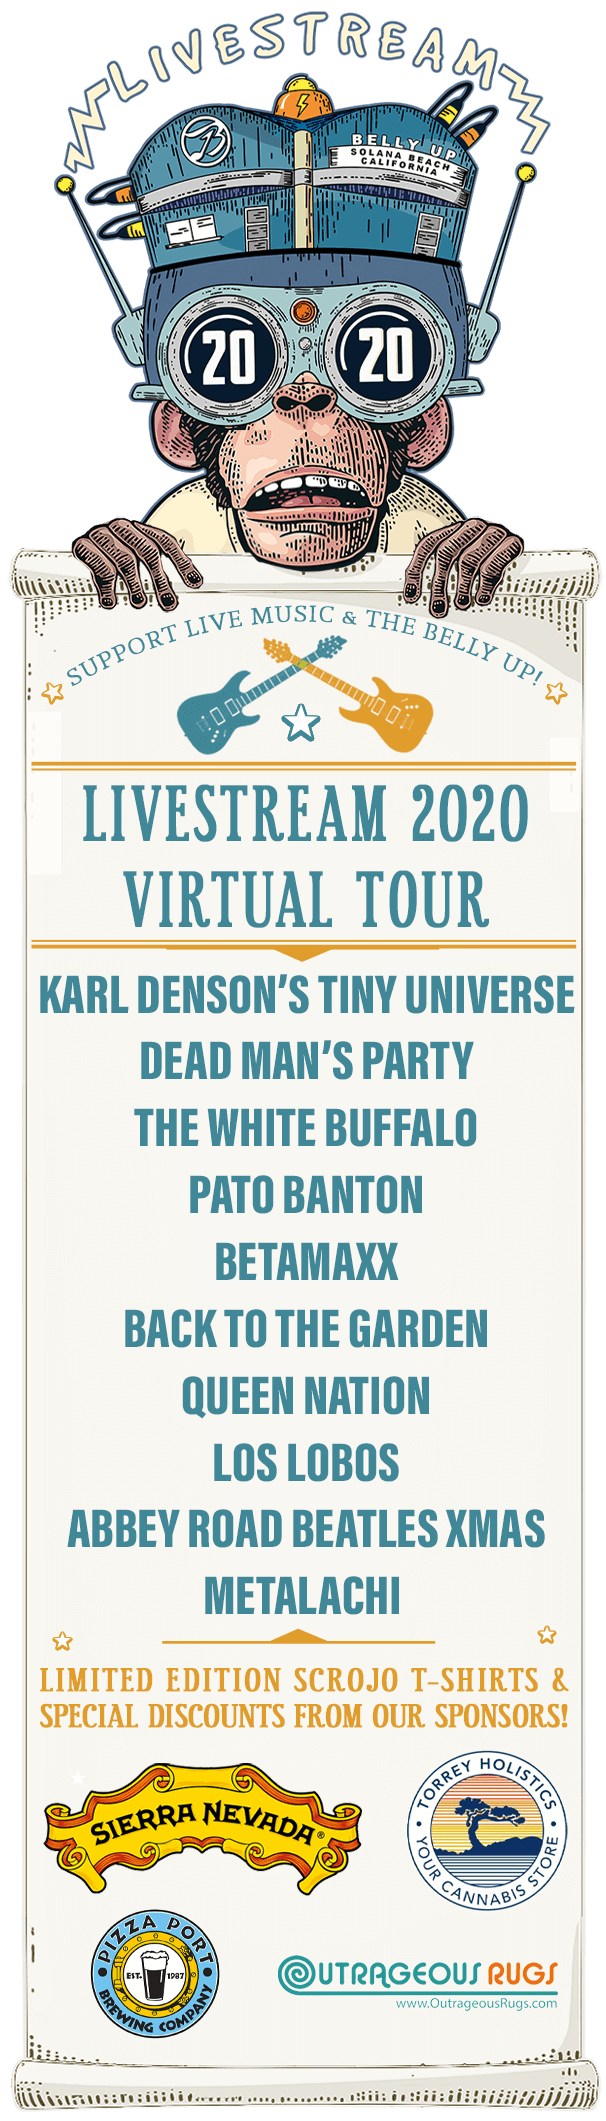 LIVESTREAM 2020 VIRTUAL TOUR